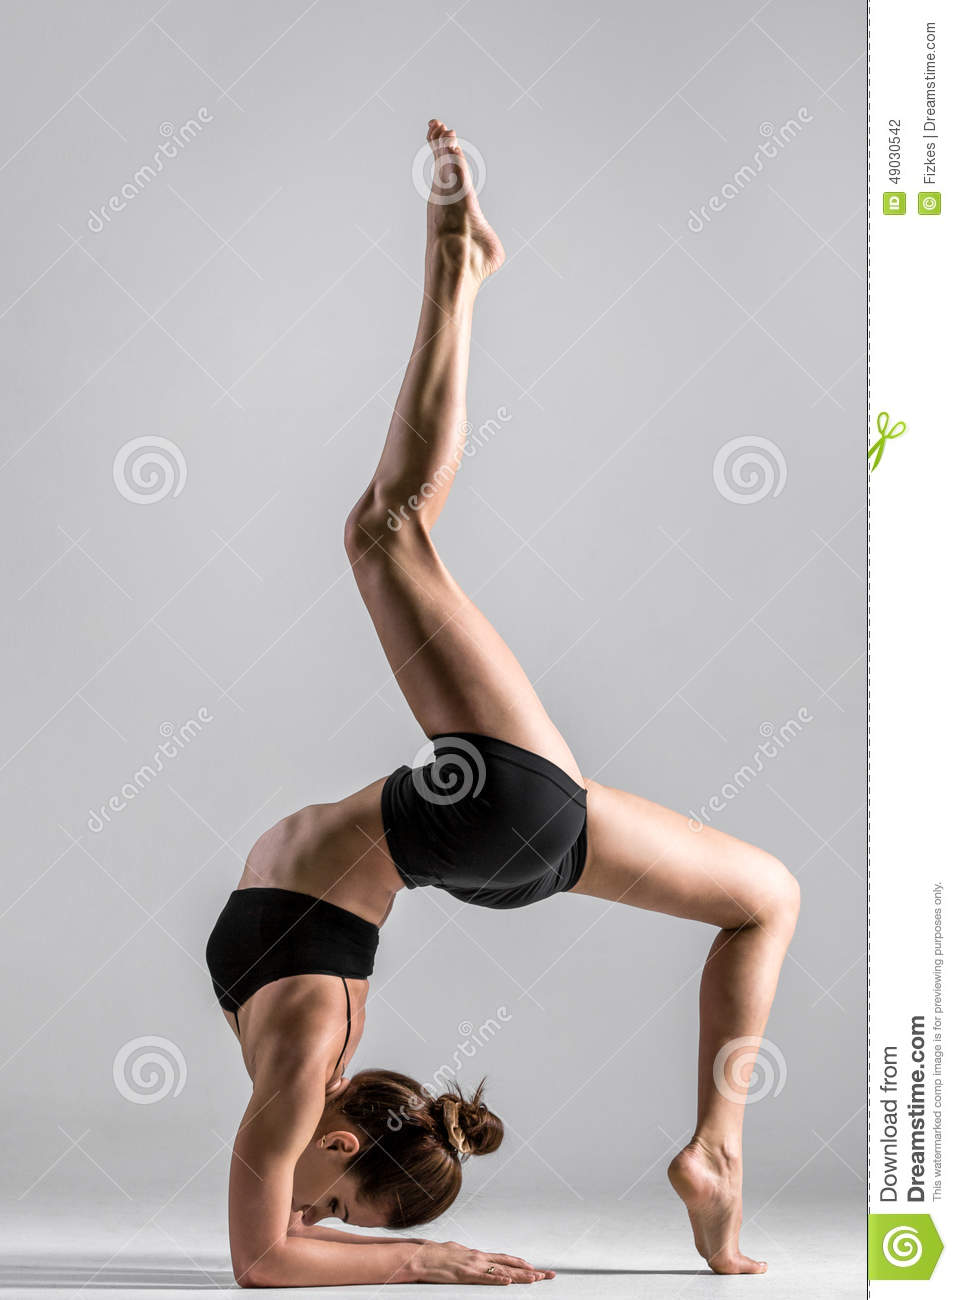 Download Yogi Gymnast Girl Performs Acrobatic Exercise Stock Photo - Image of headstand, person: 49030542